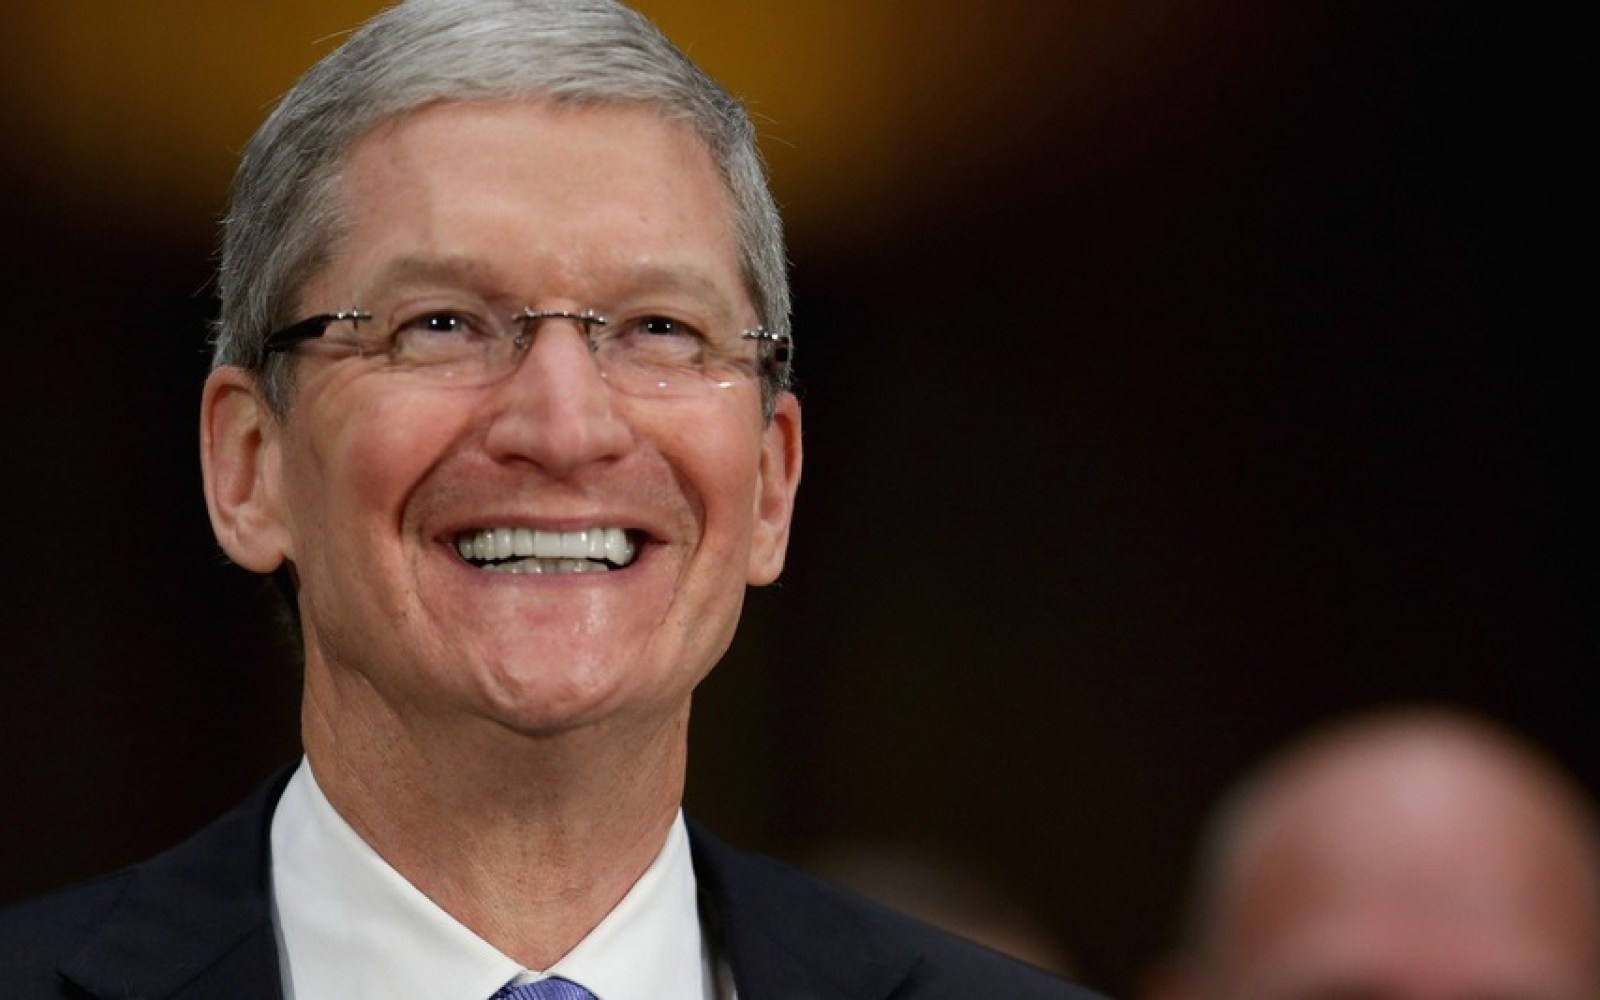 Tim Cook officially comes out as gay in public essay about equality